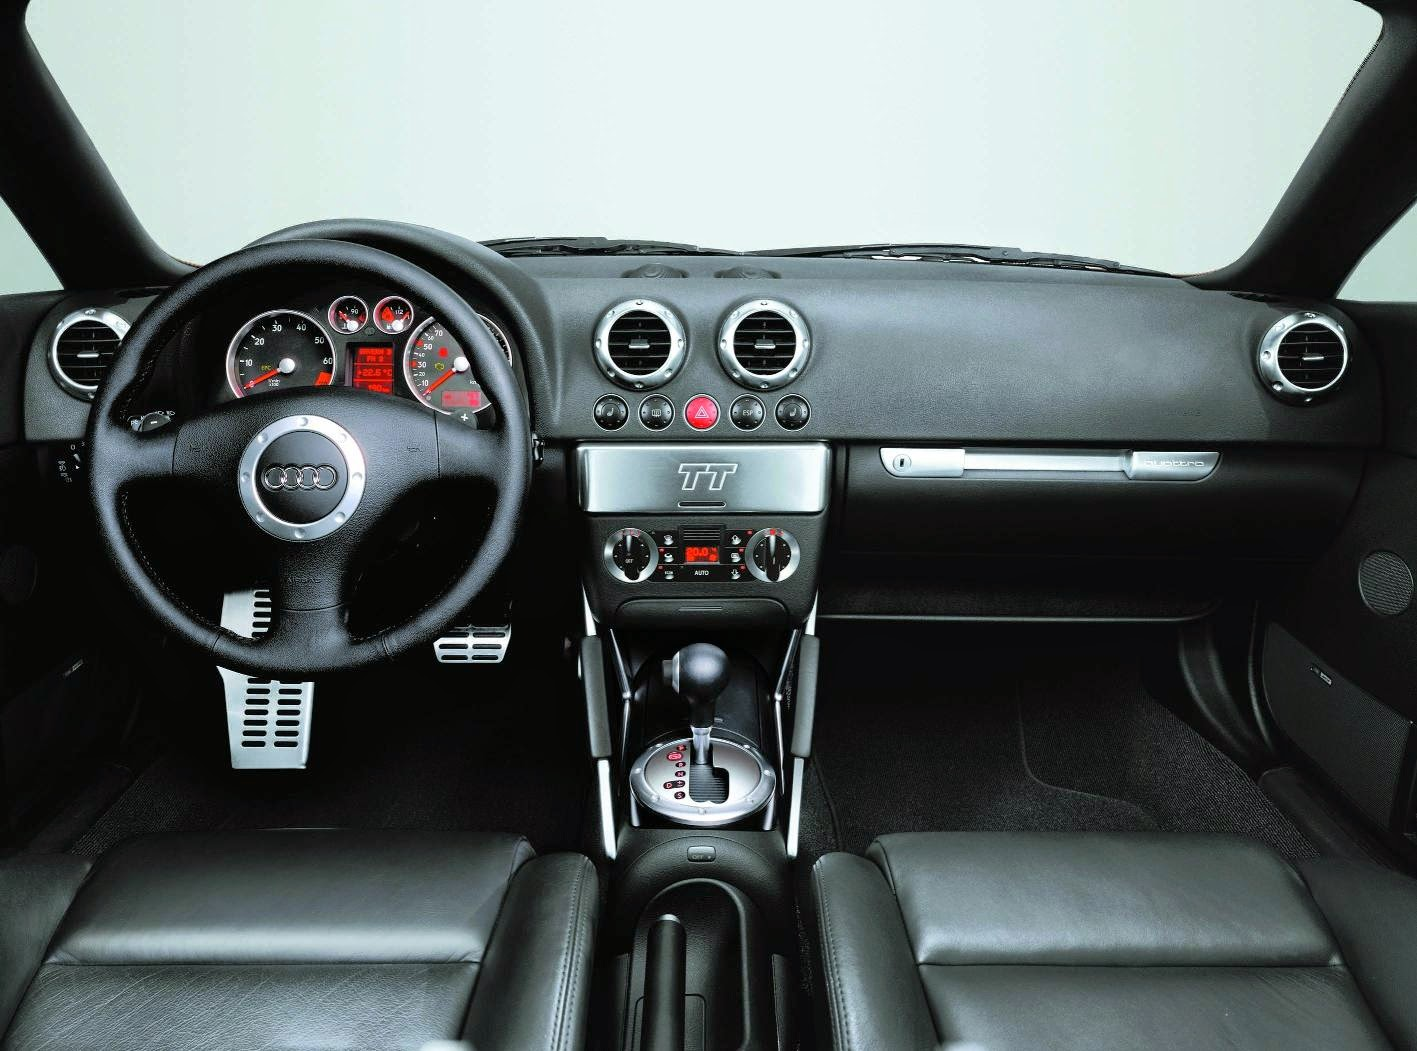 Audi TT interior with DSG gearbox